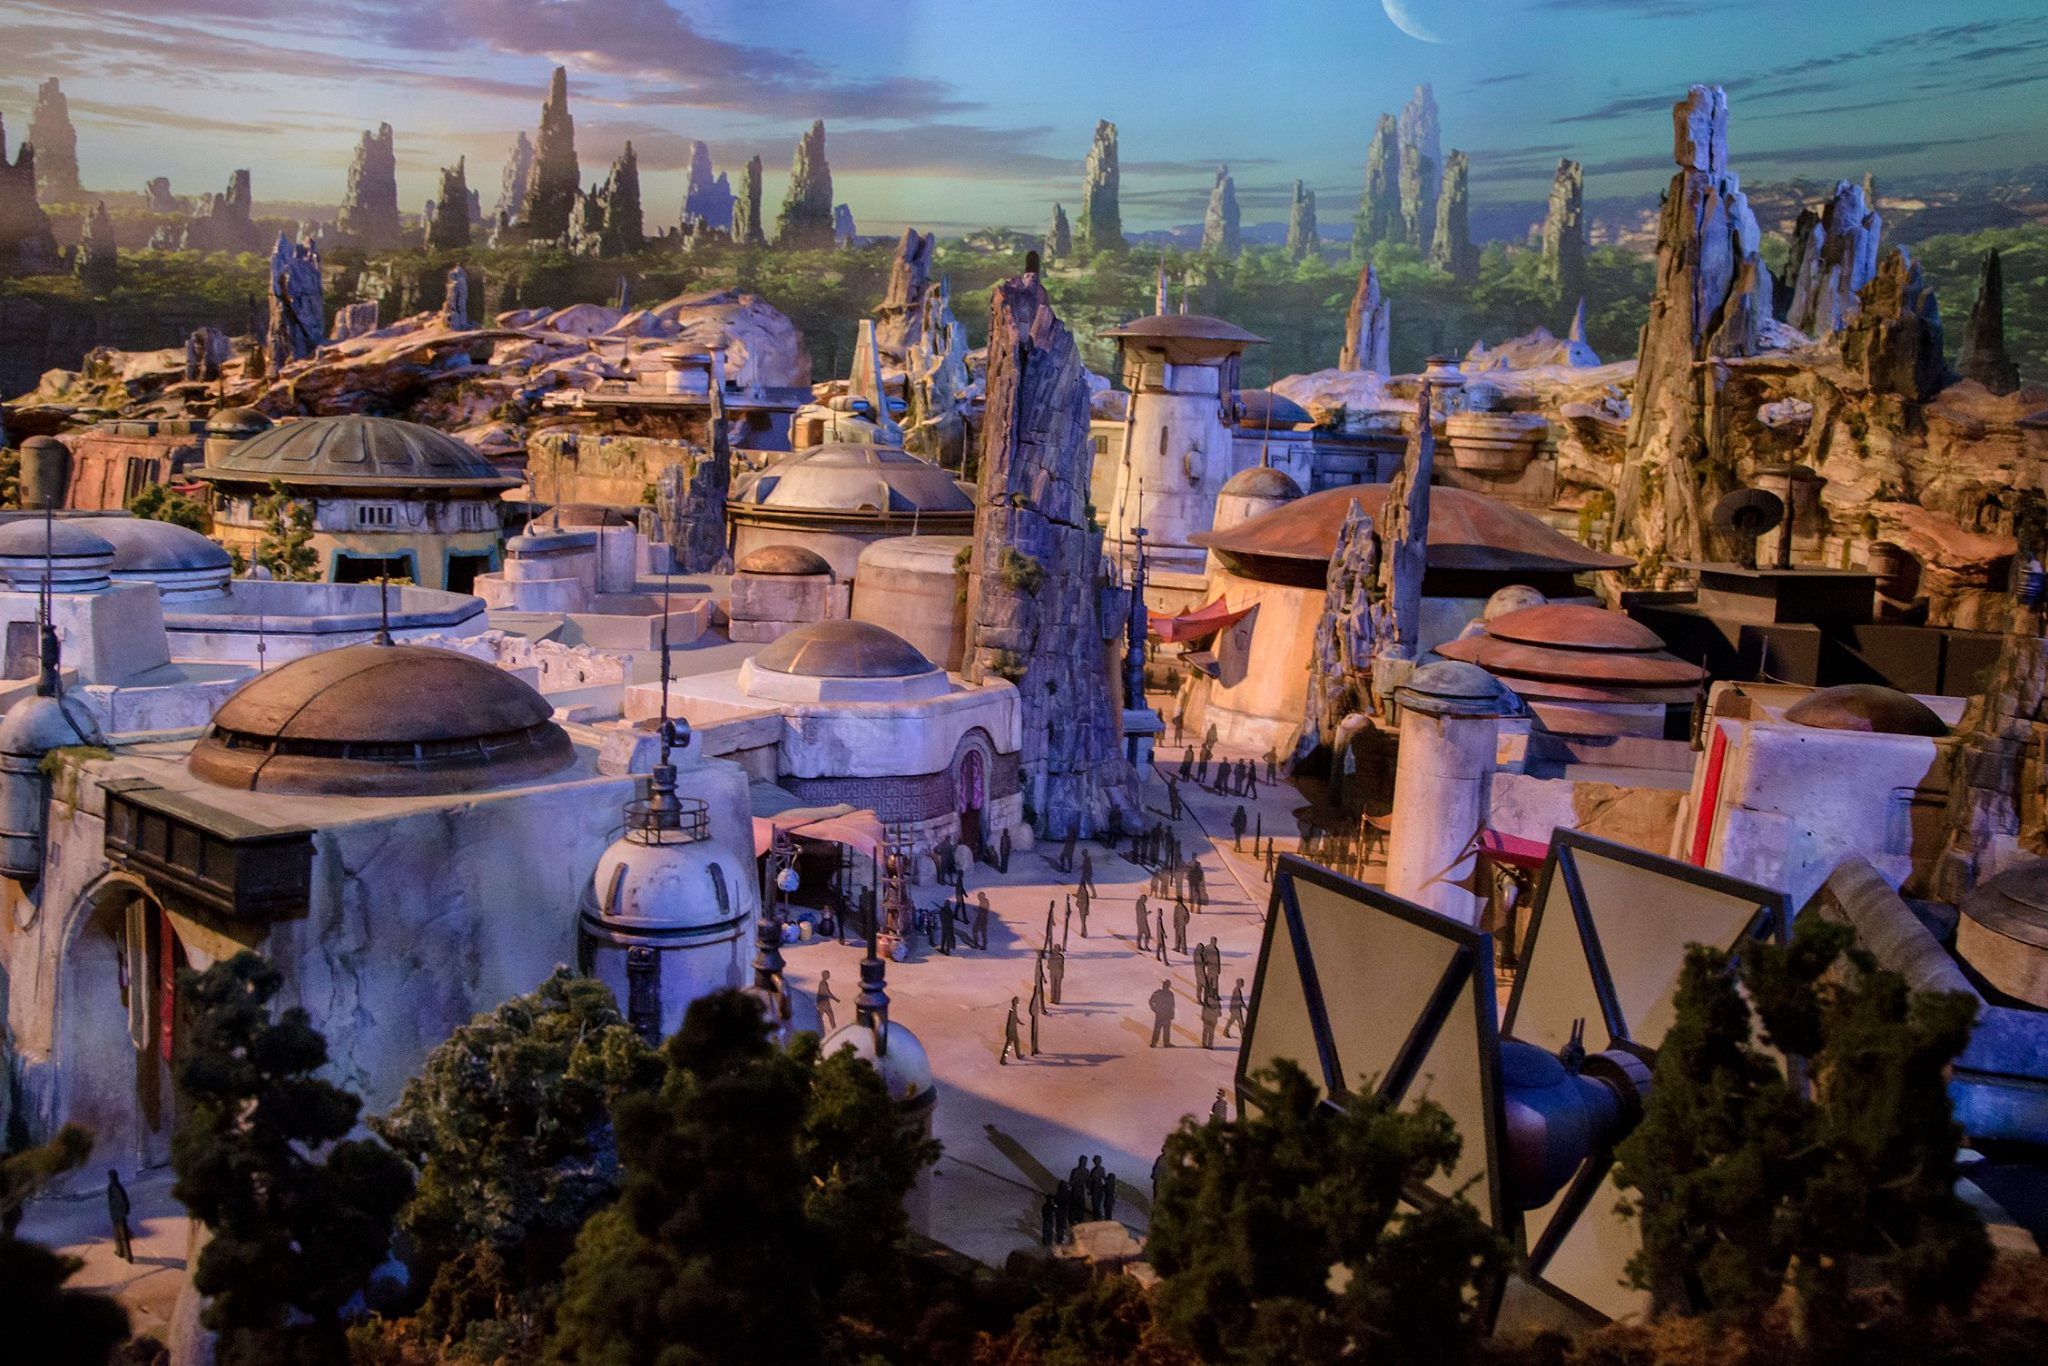 disney-reveals-incredibly-cool-full-star-wars-land-model-at-d23-expo1.jpeg